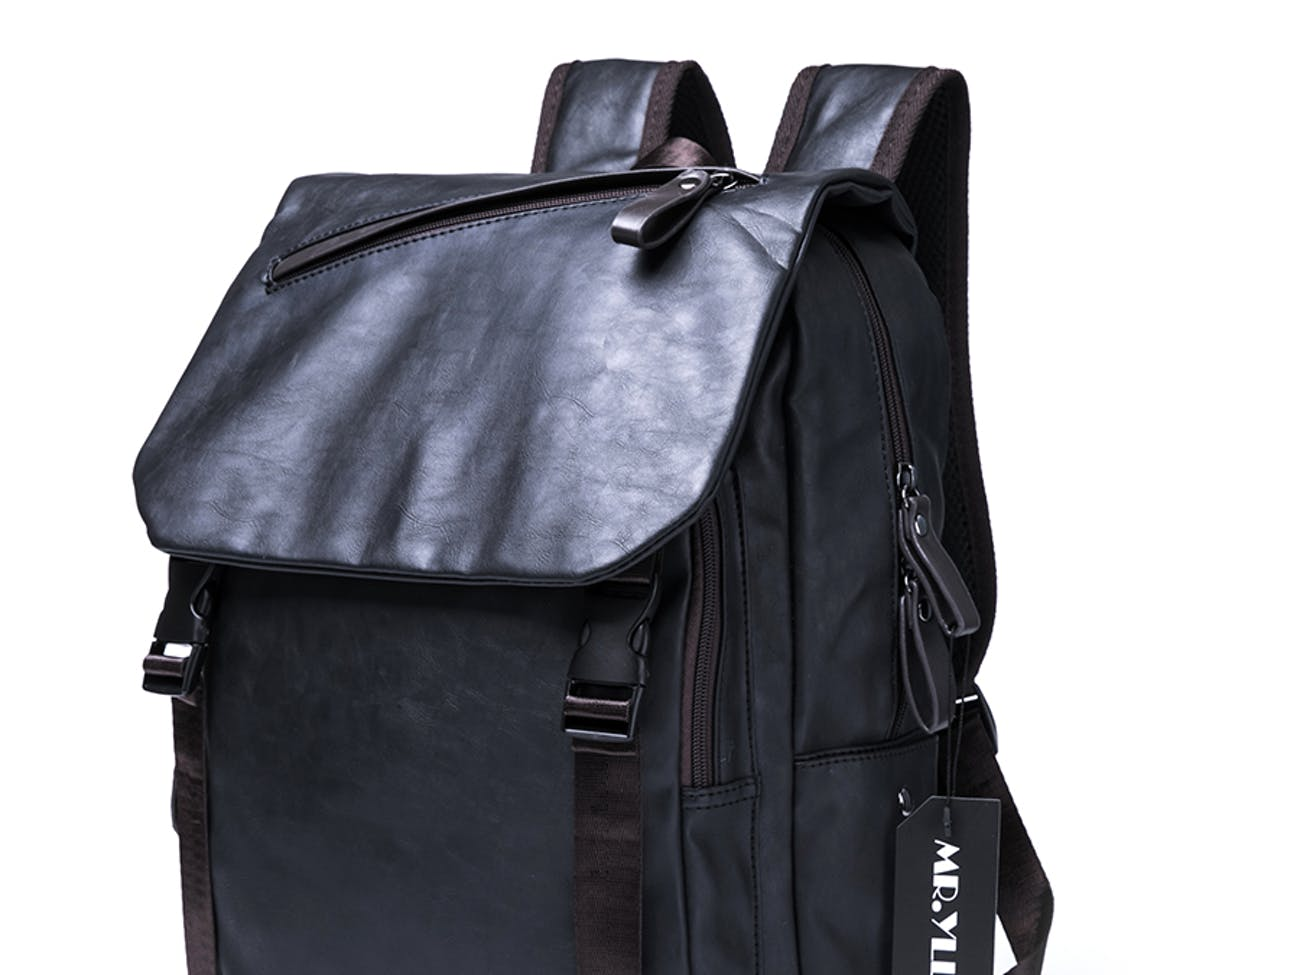 12 Smart Backpacks for Adults That Want to Carry Their Tech